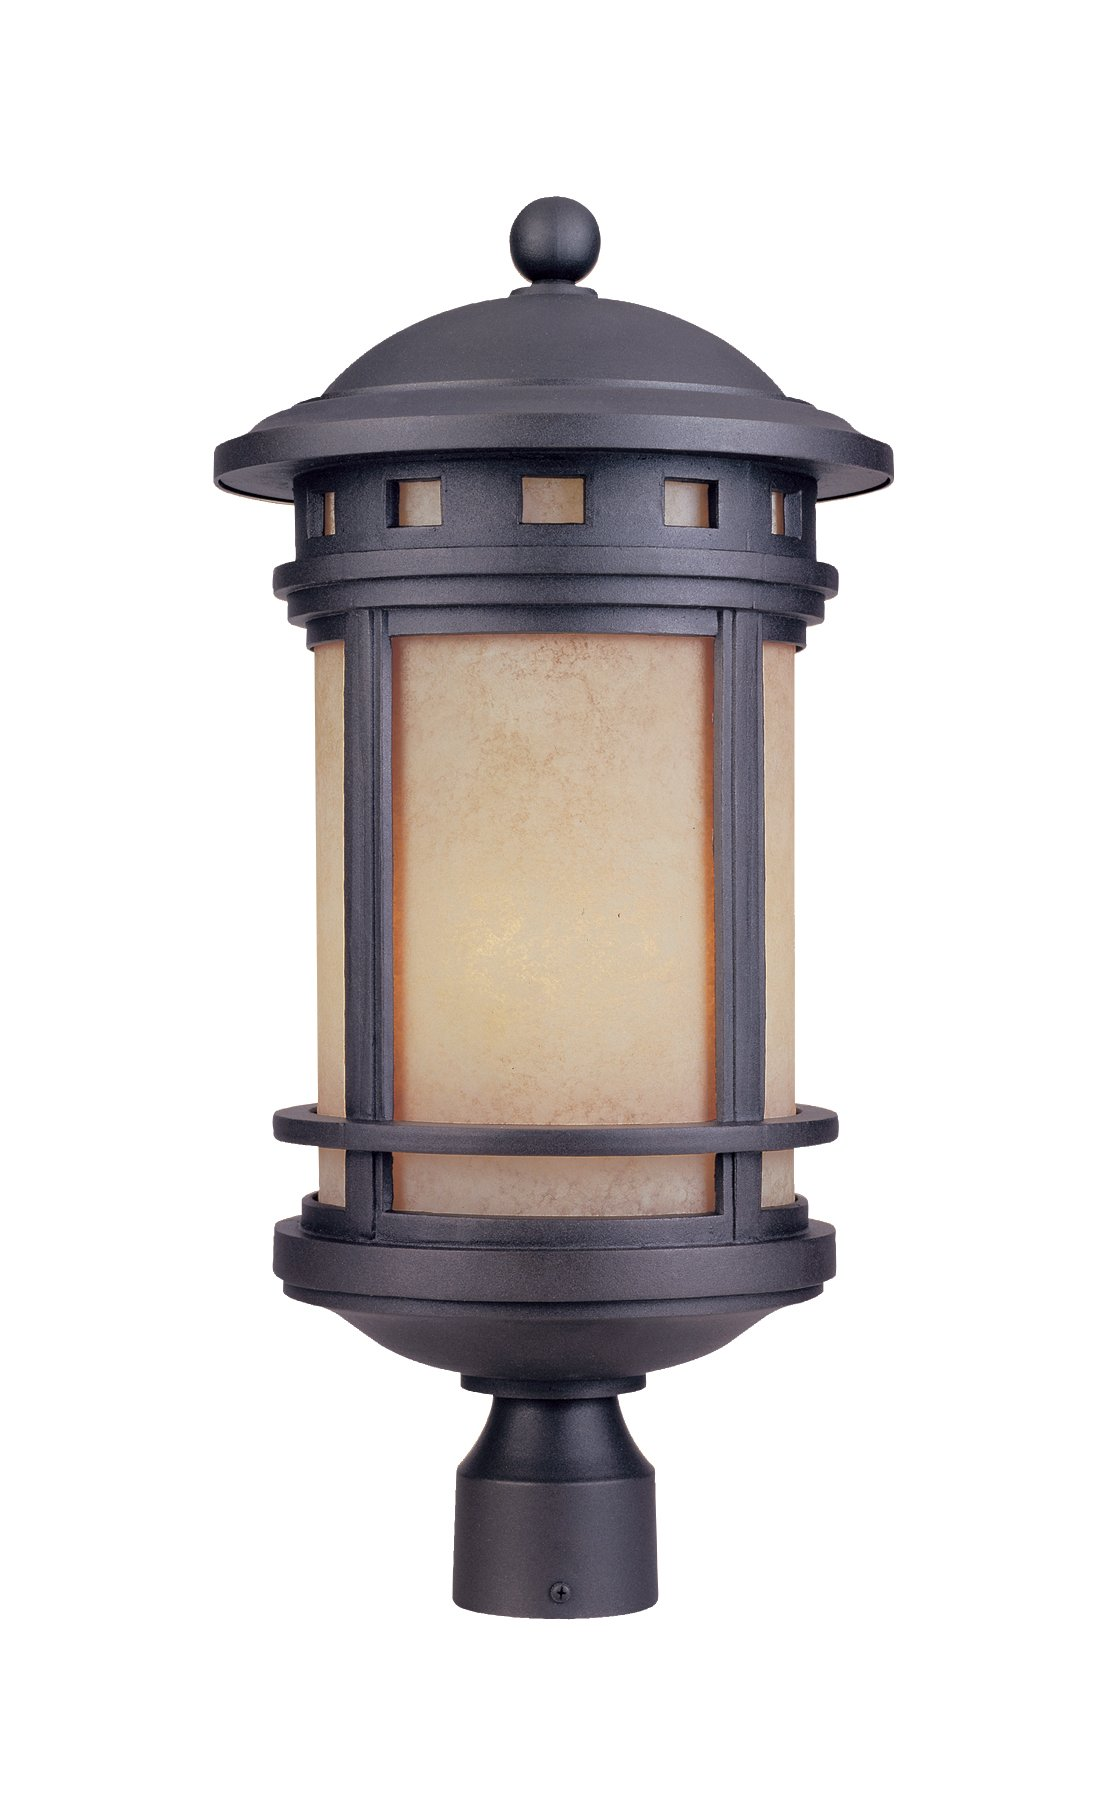 Designers Fountain 2396-AM-ORB Sedona Post Lanterns, Oil Rubbed Bronze by Designers Fountain